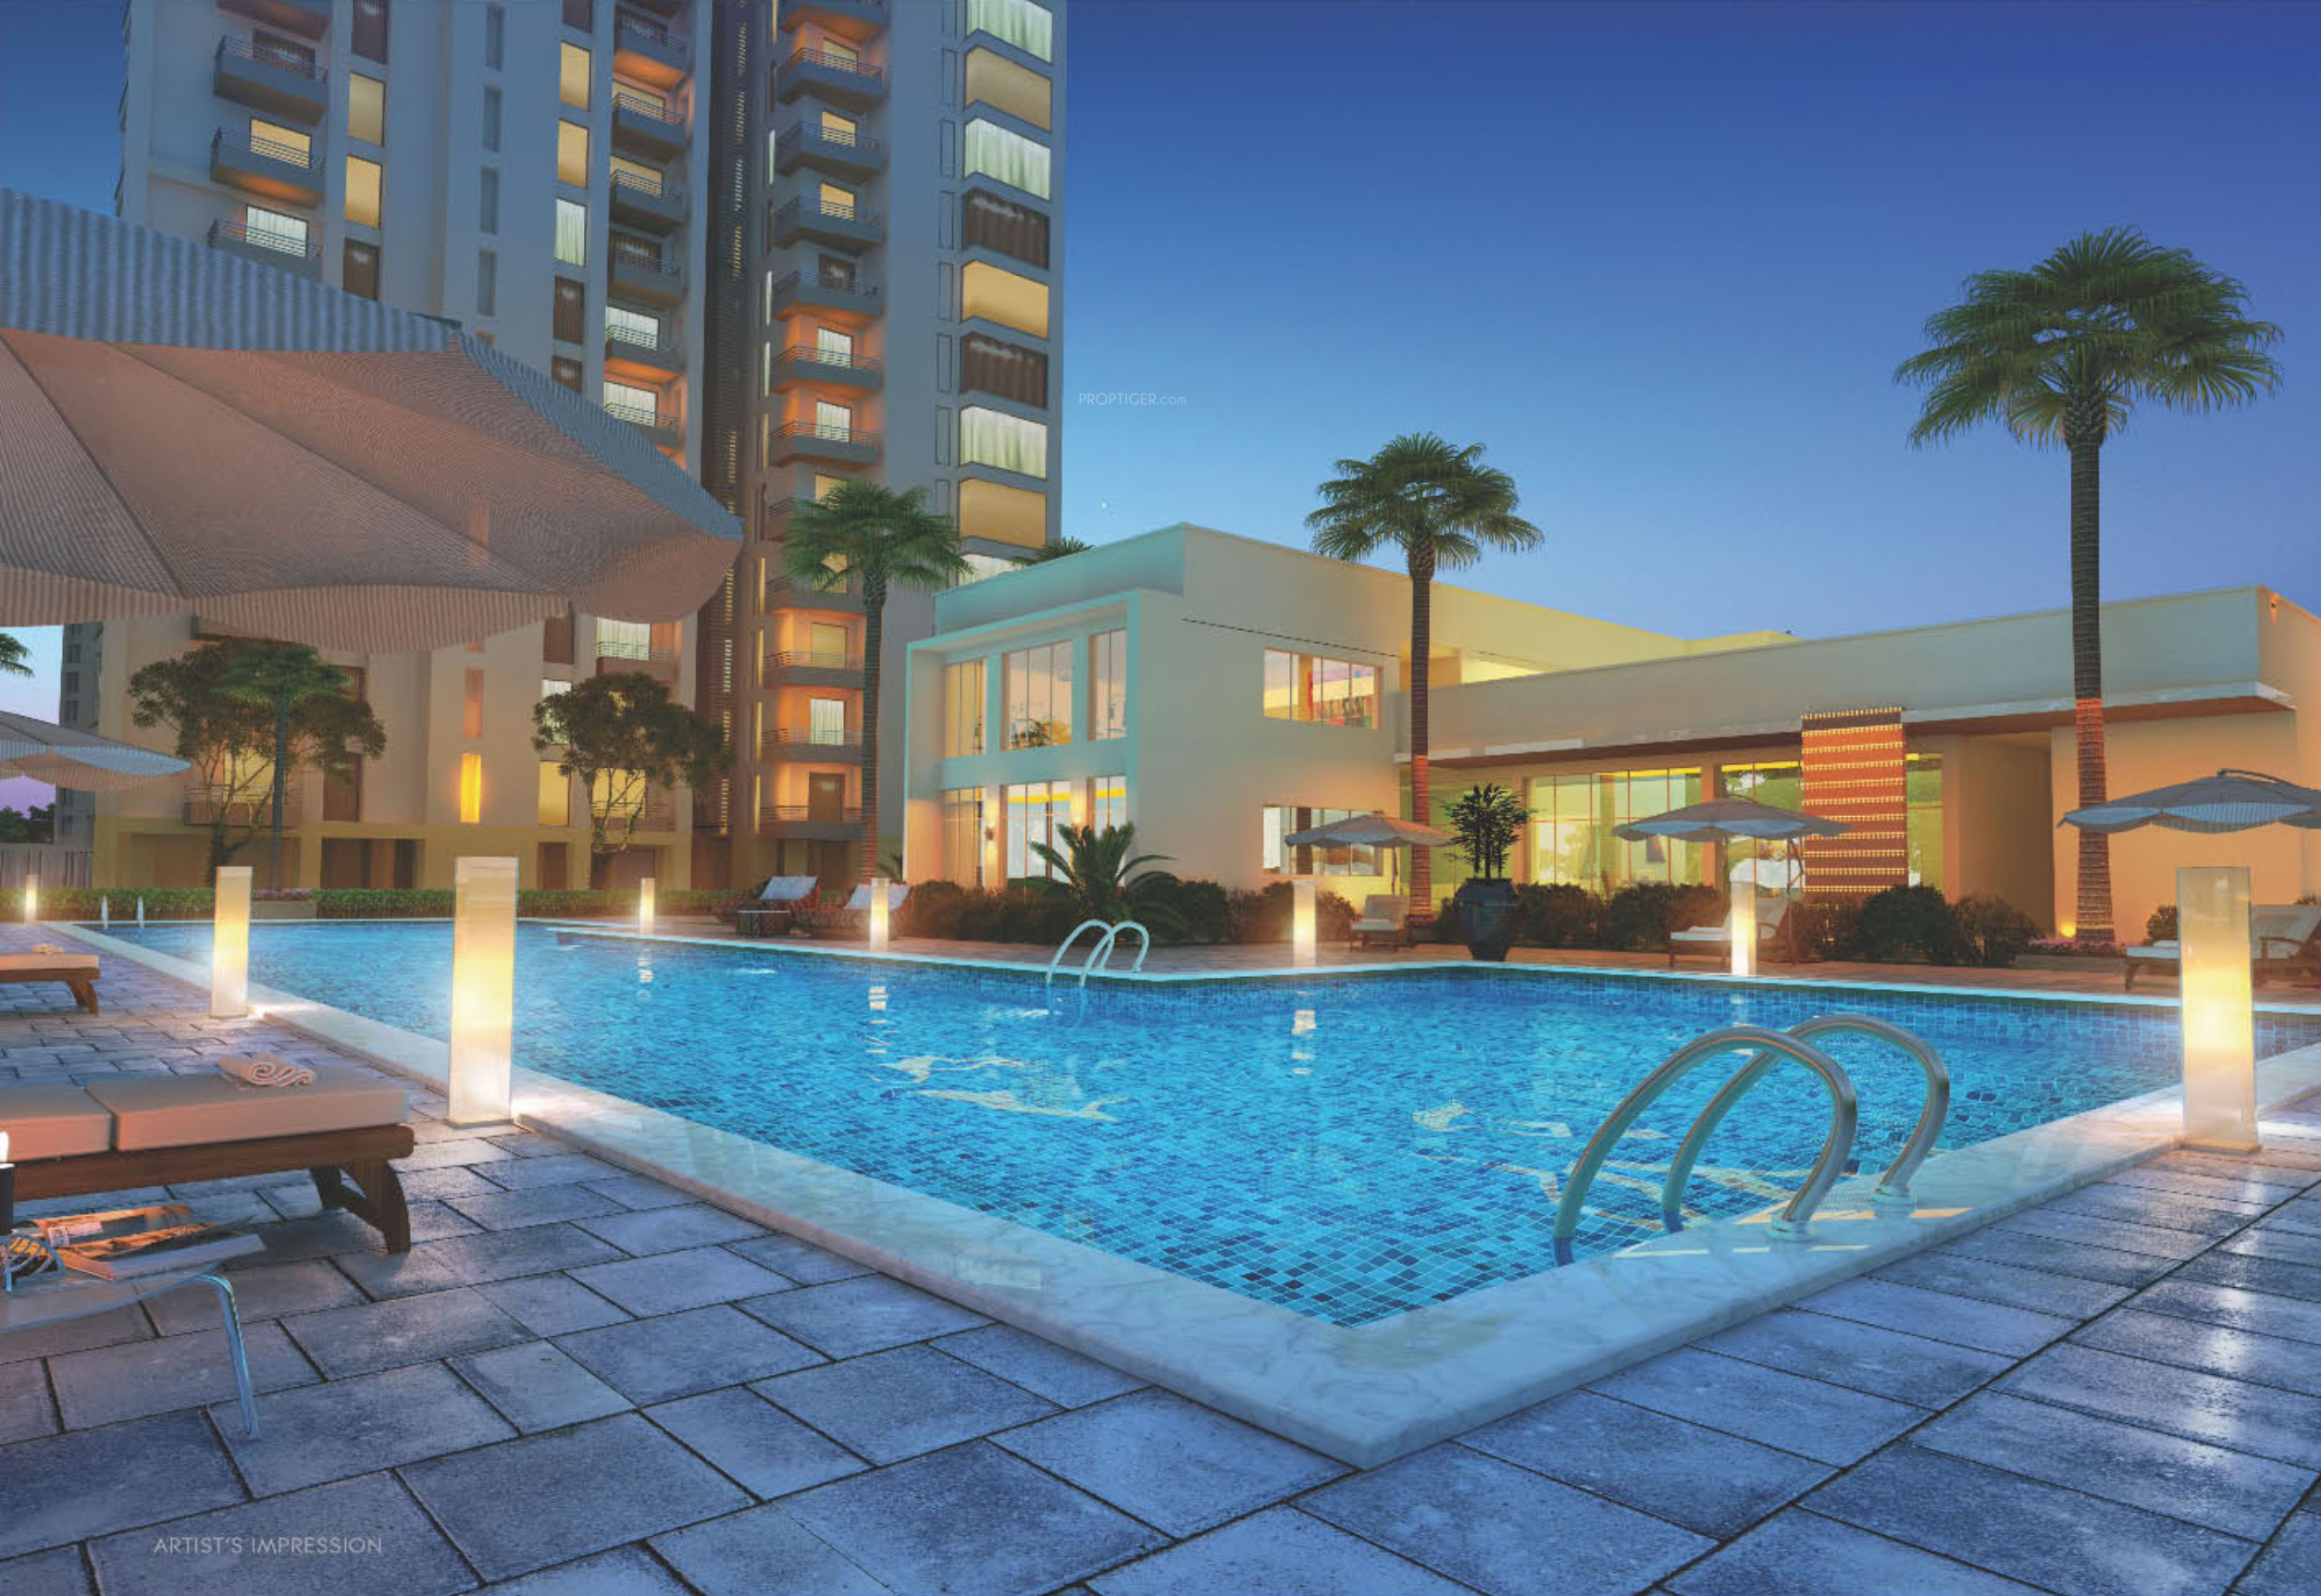 950 Sq Ft 1 Bhk 1t Apartment For Sale In Silverglades Melia First Citizen Sector 35 Gurgaon